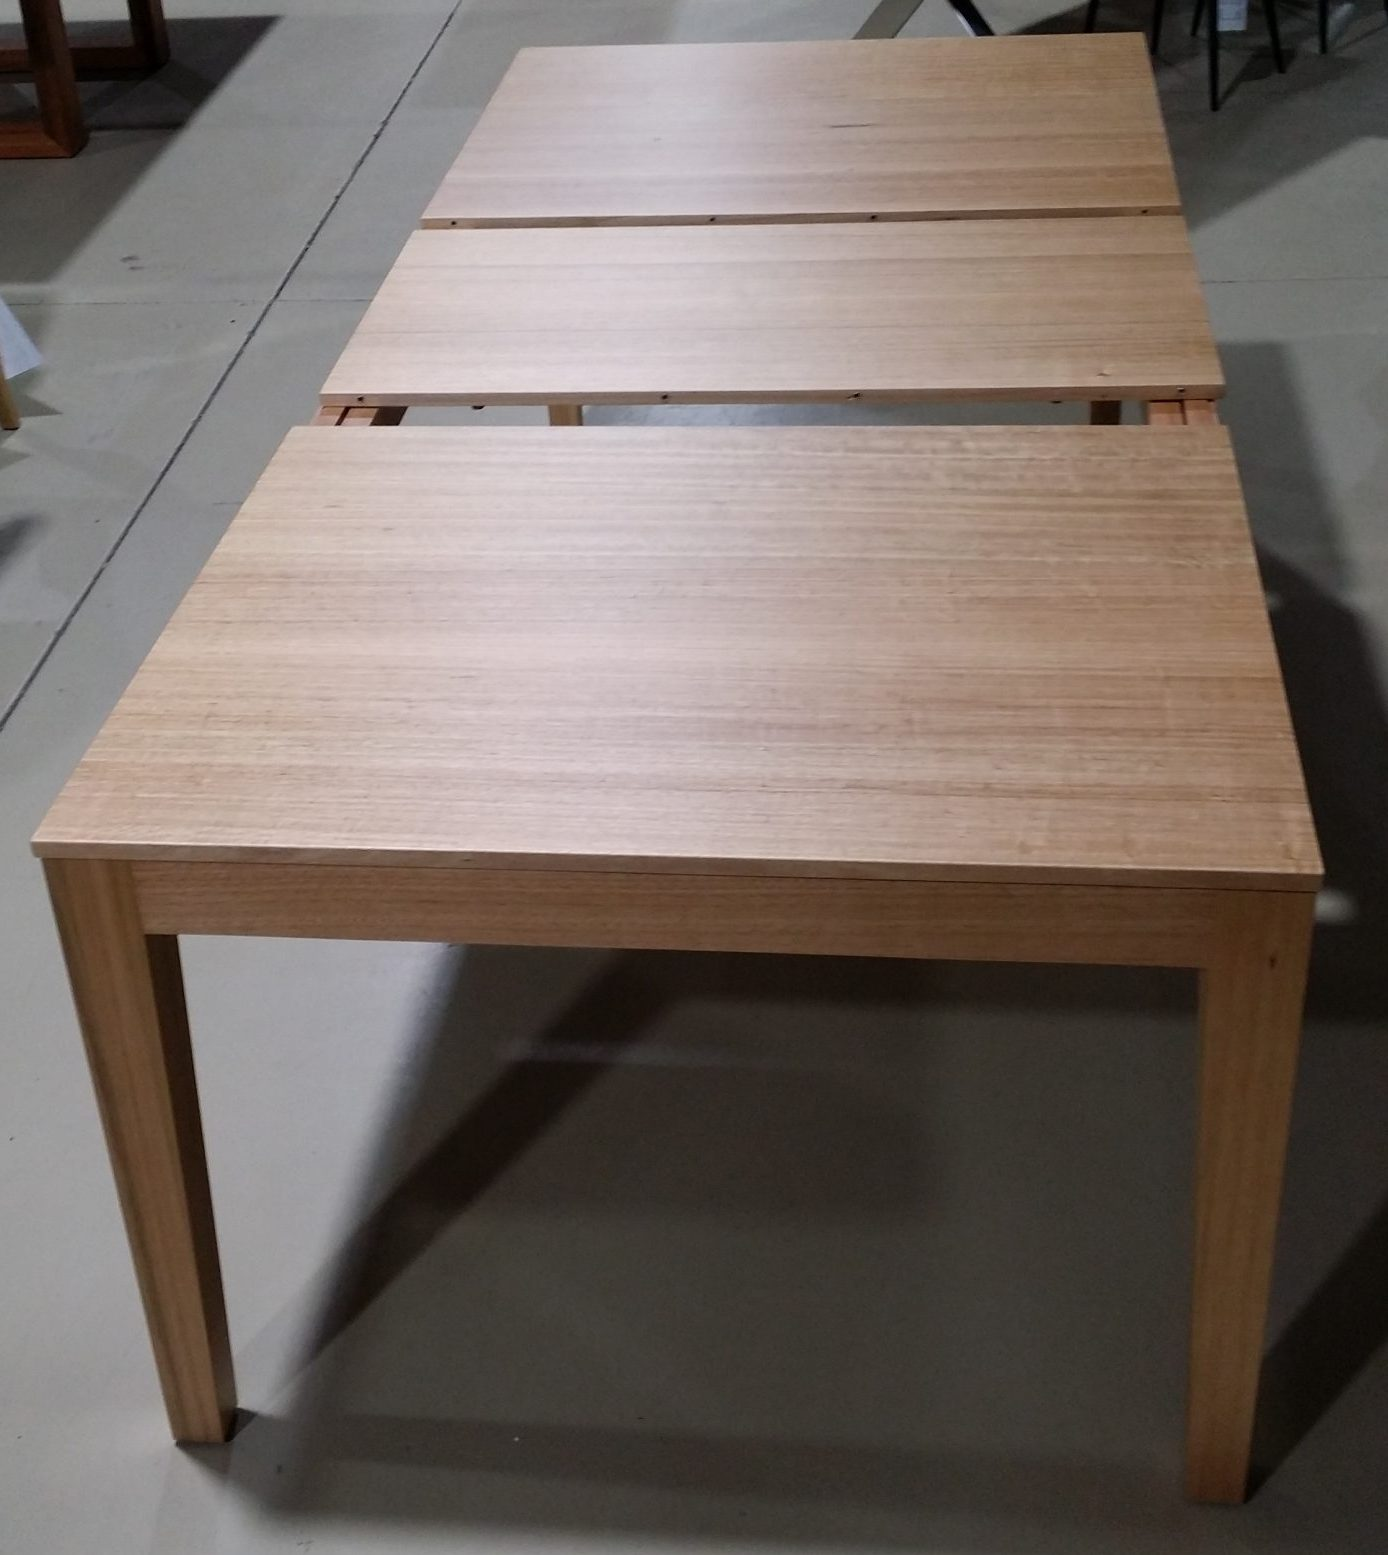 Urrbrae Extension Dining Table Image